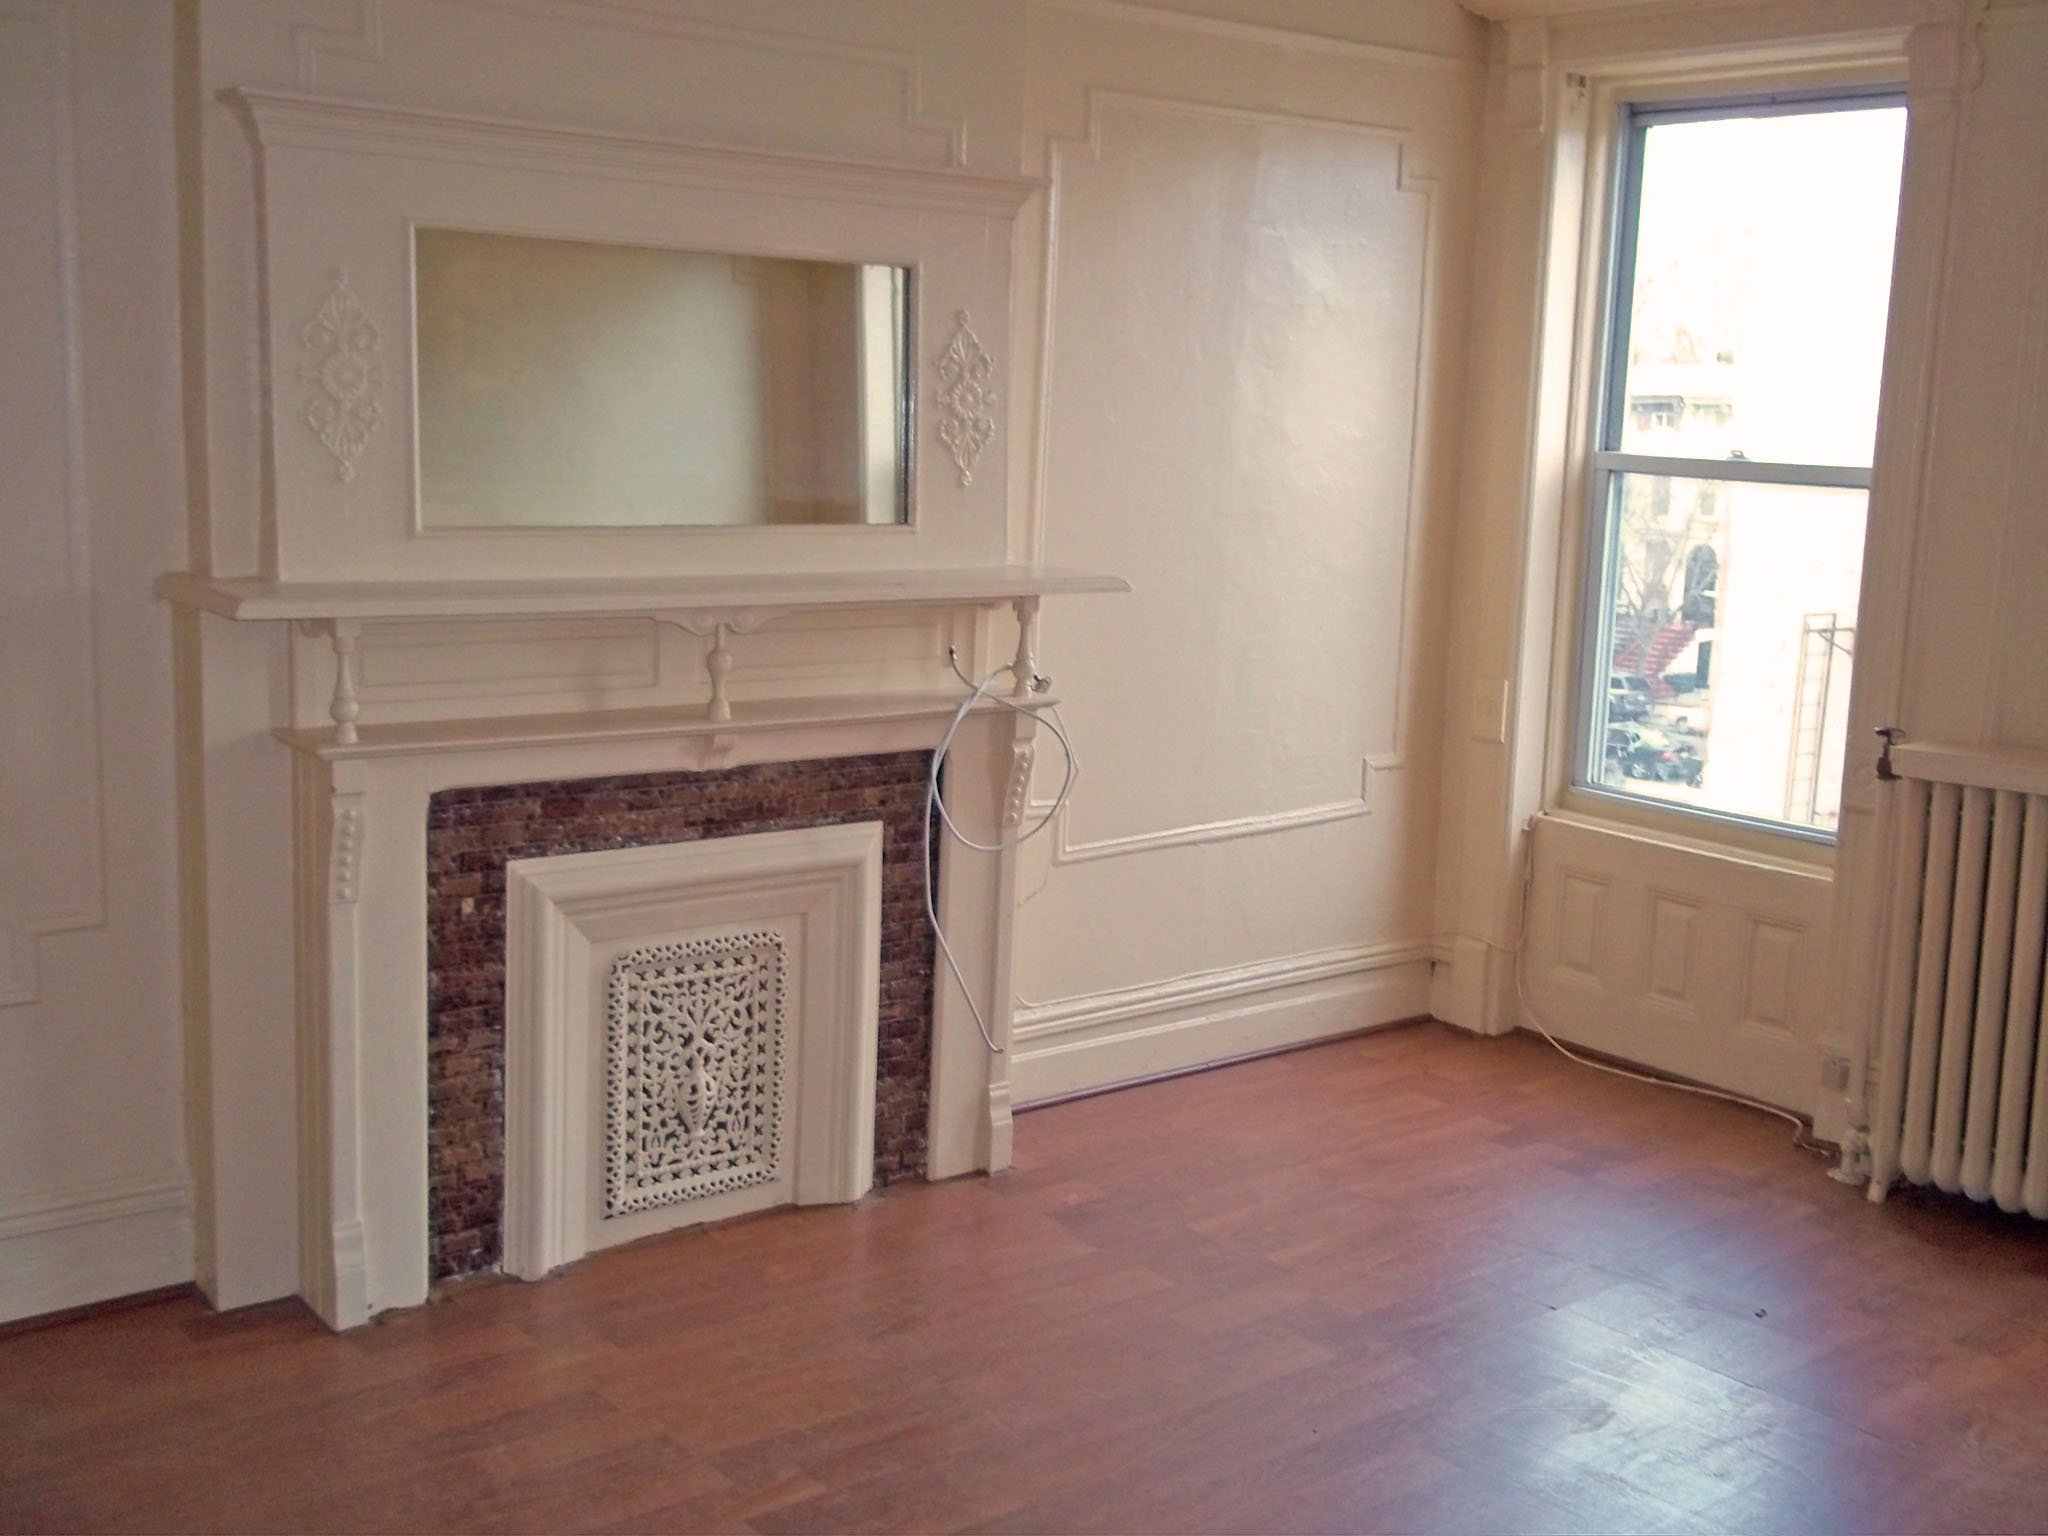 Bedford stuyvesant 1 bedroom apartment for rent brooklyn crg3107 for Two bedroom apt in bed stuy area